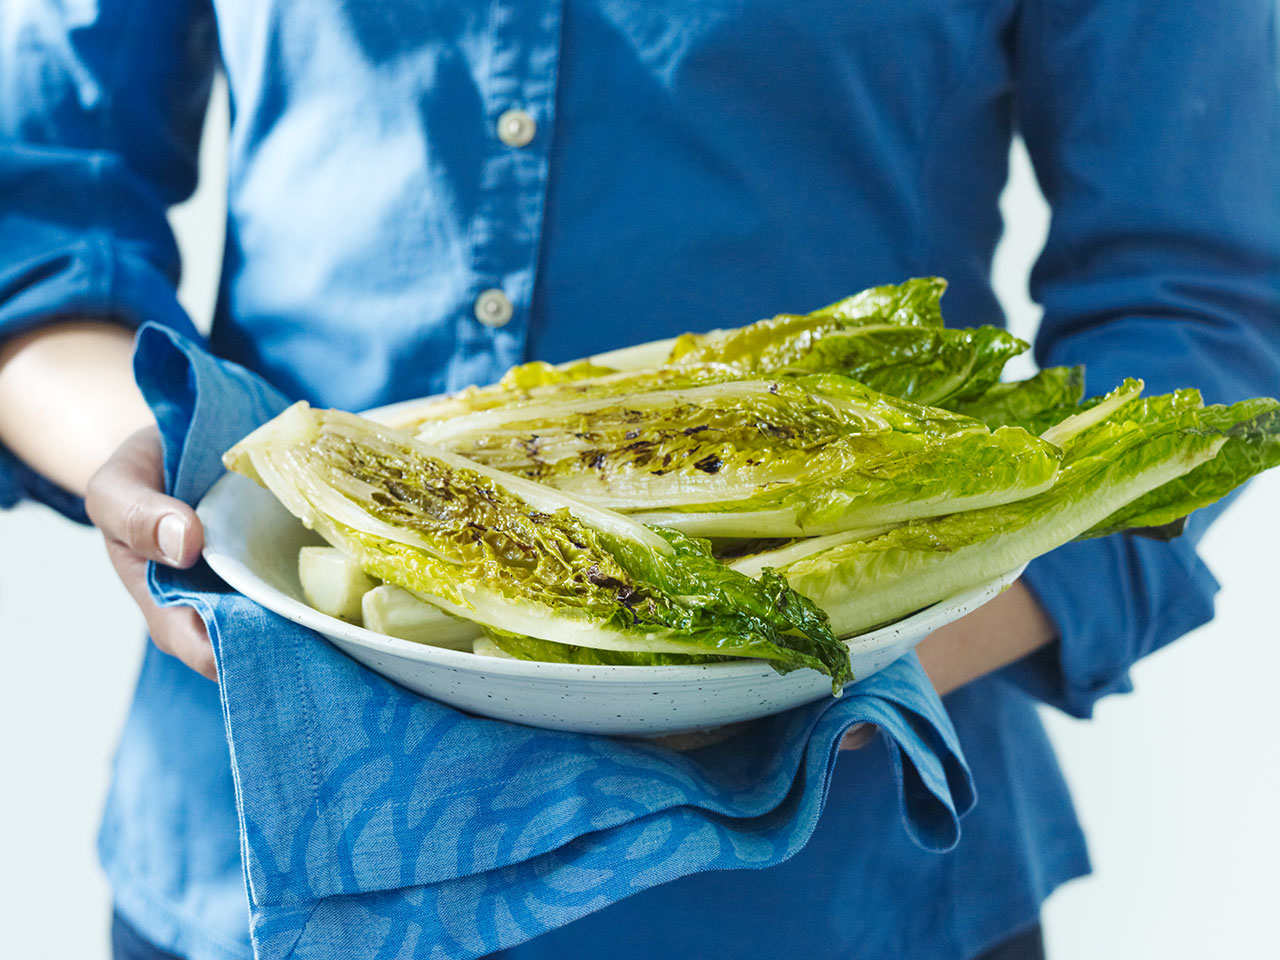 grilled romaine lettuce on a plate